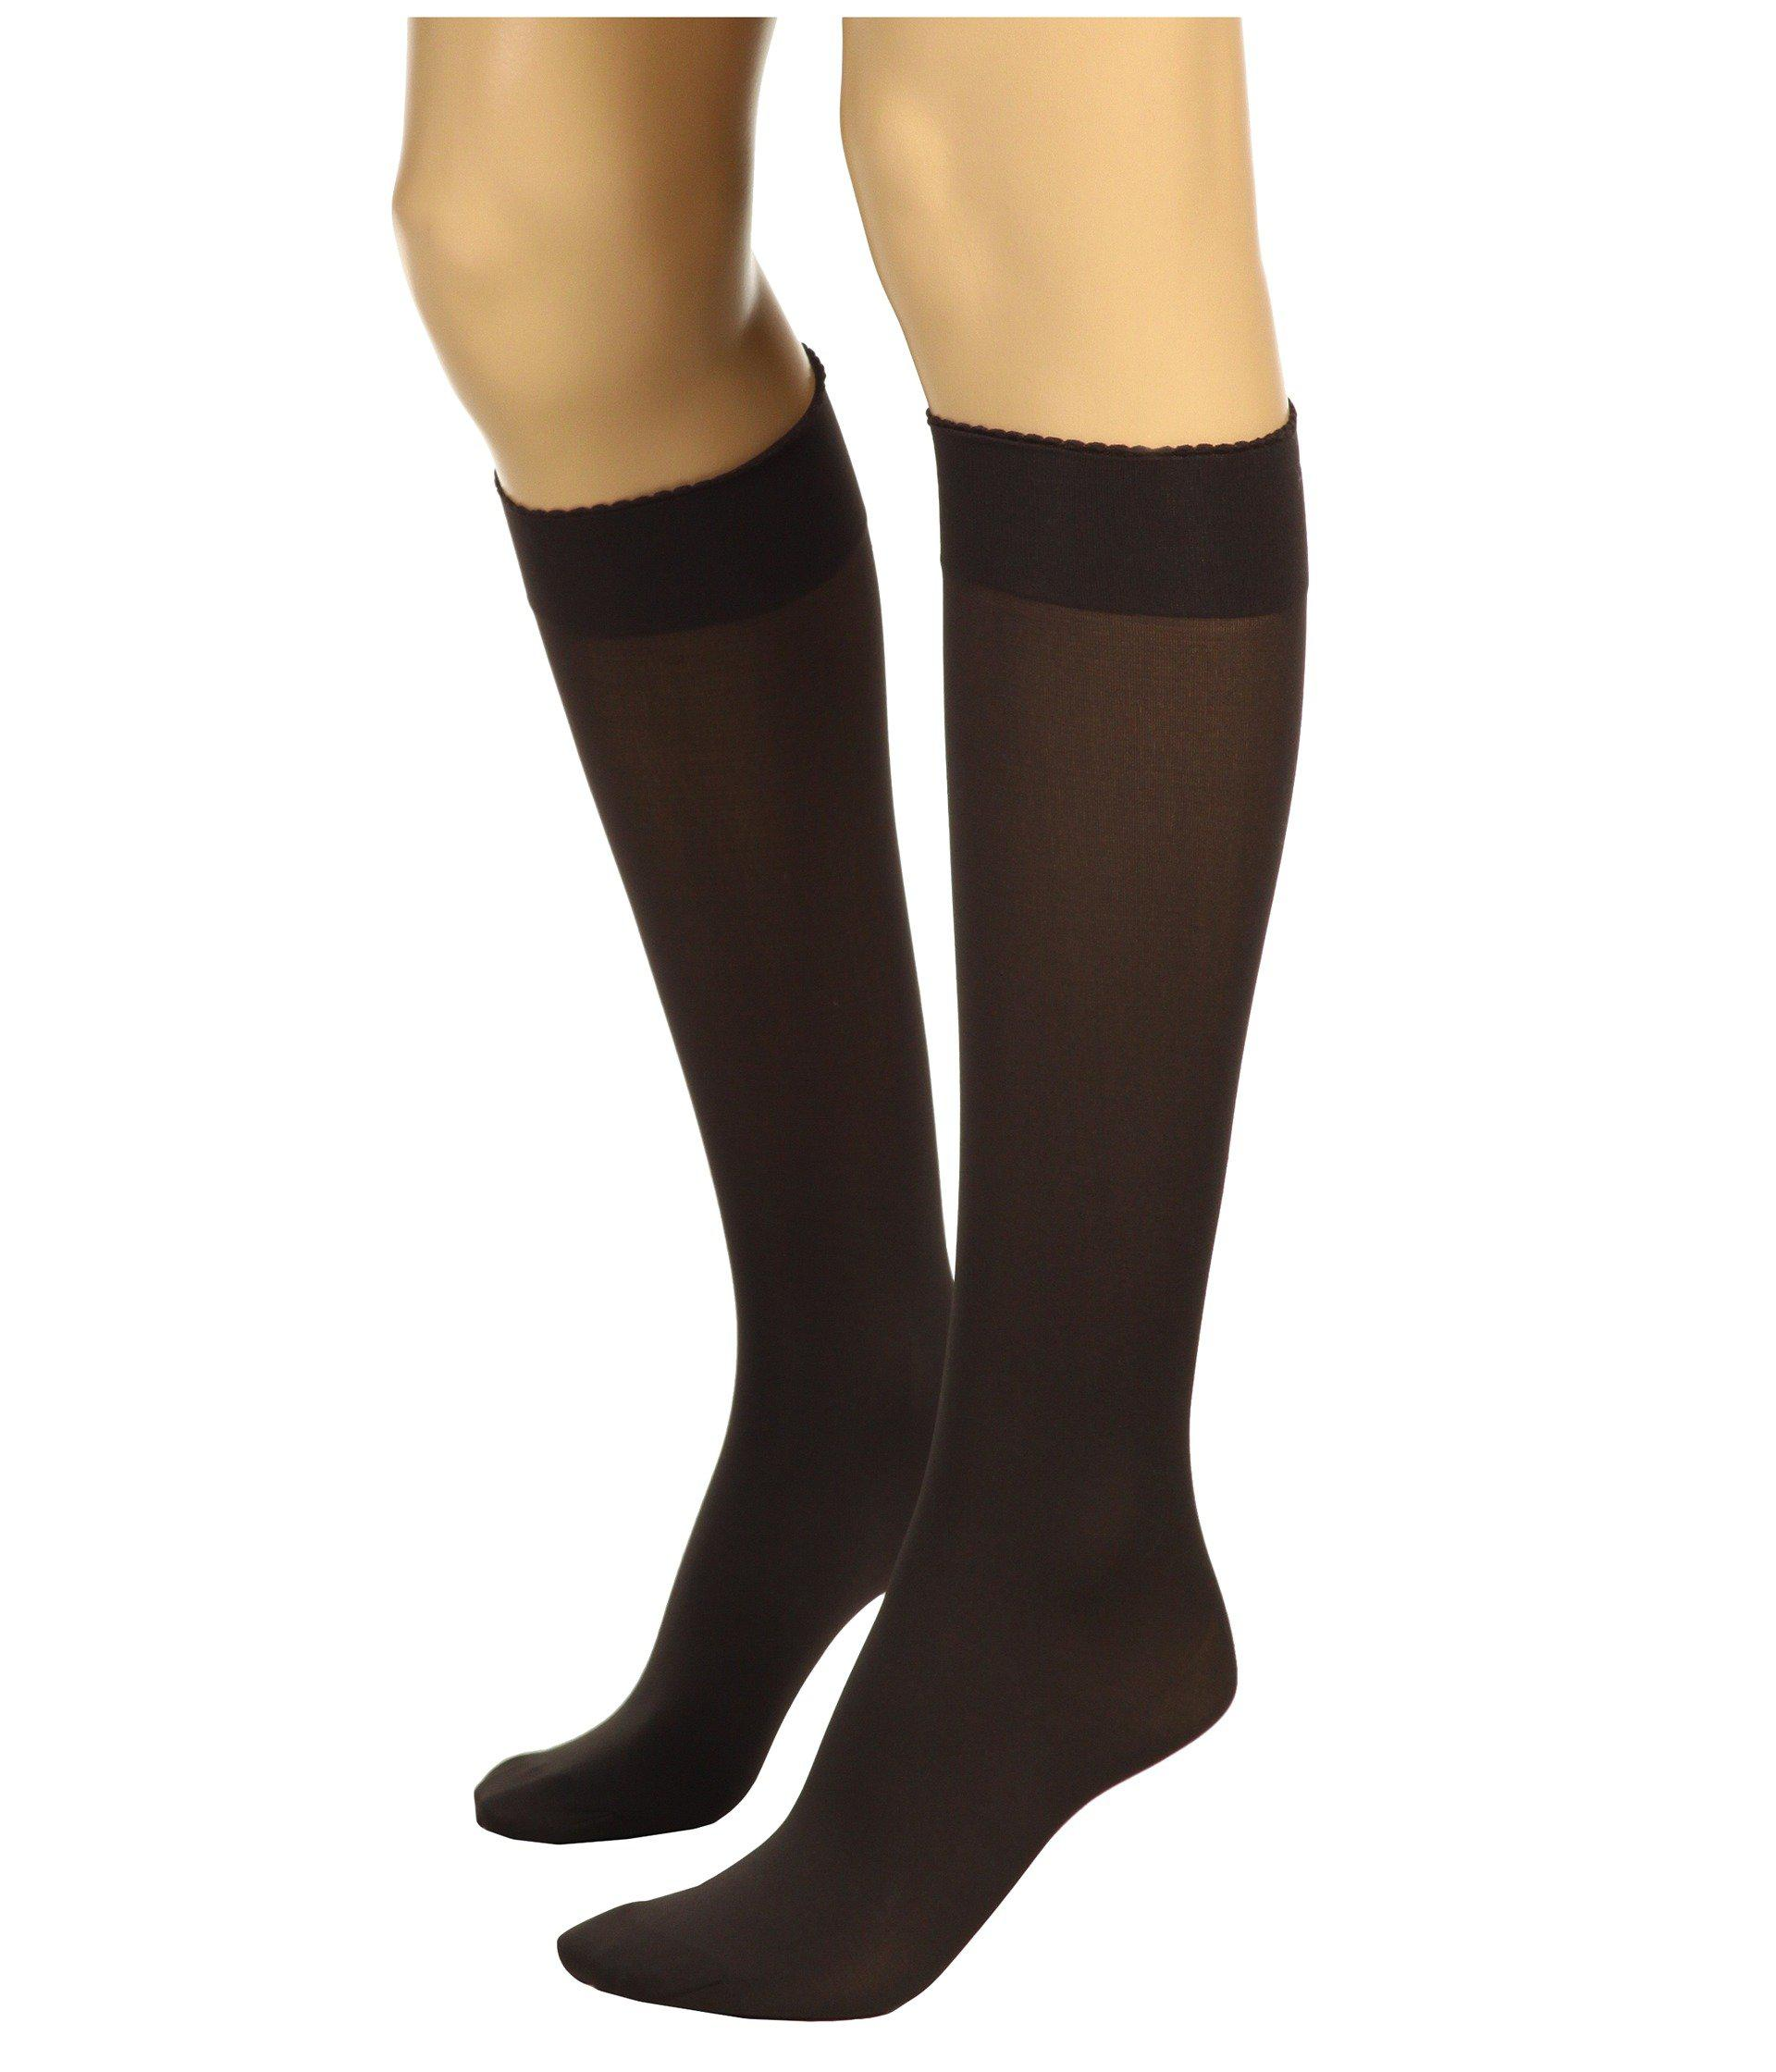 745f8c21890 Lyst - Wolford Velvet De Luxe 50 Knee-highs (admiral) Women s Knee High  Socks Shoes in Black